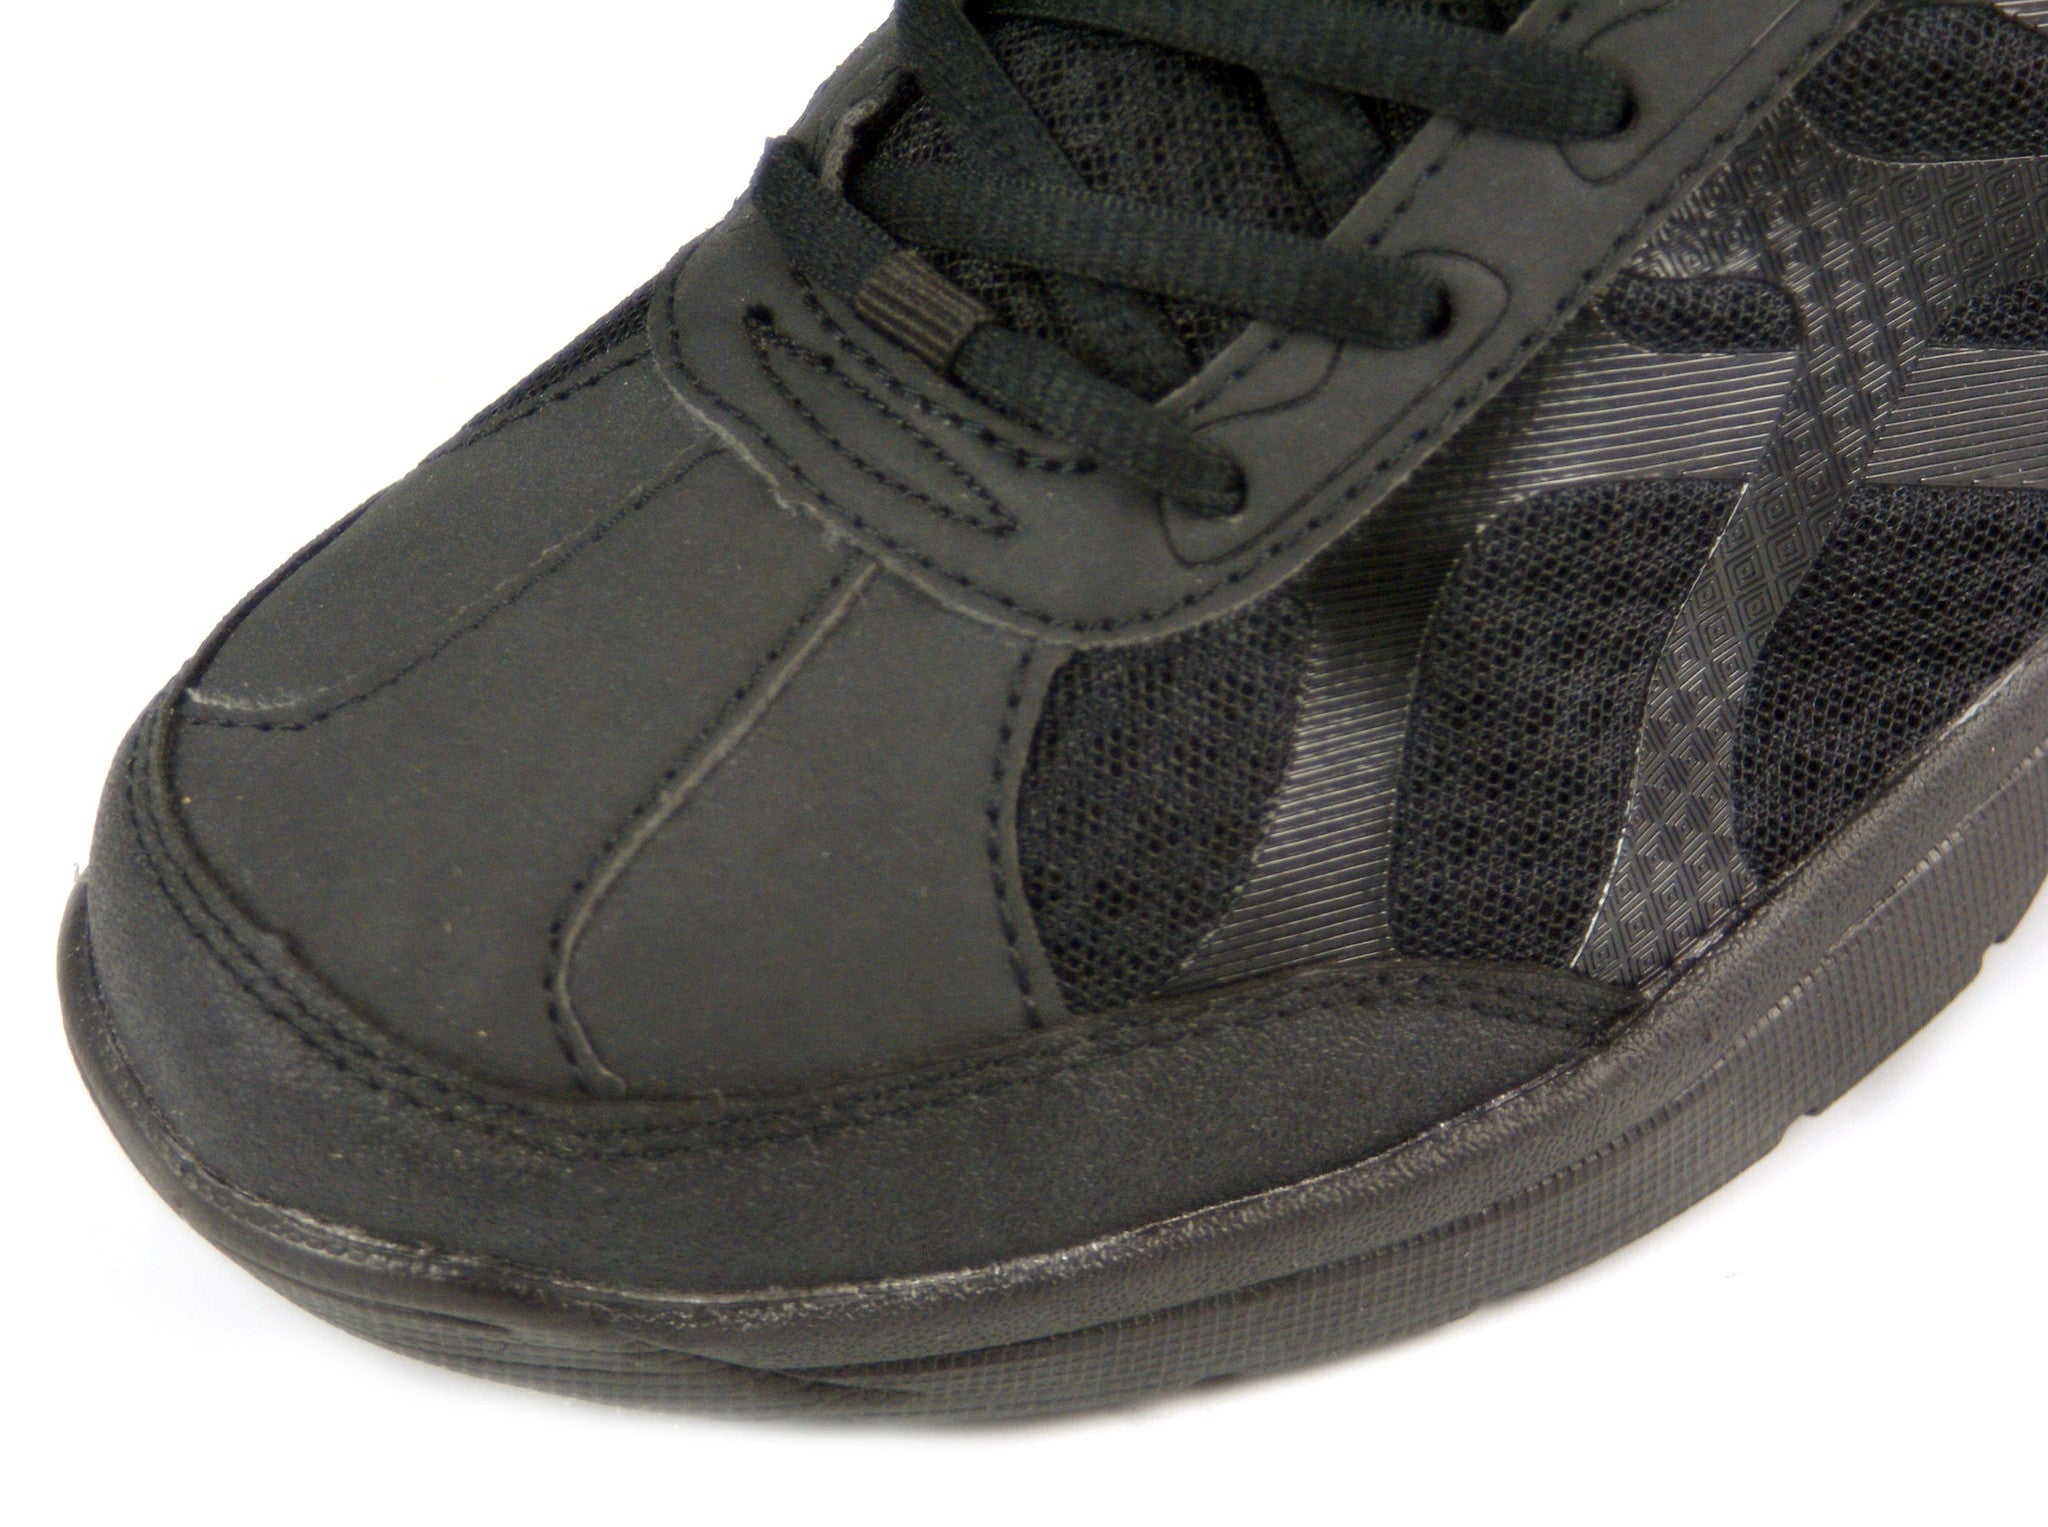 srs non slip and resistant leather flat work waitress